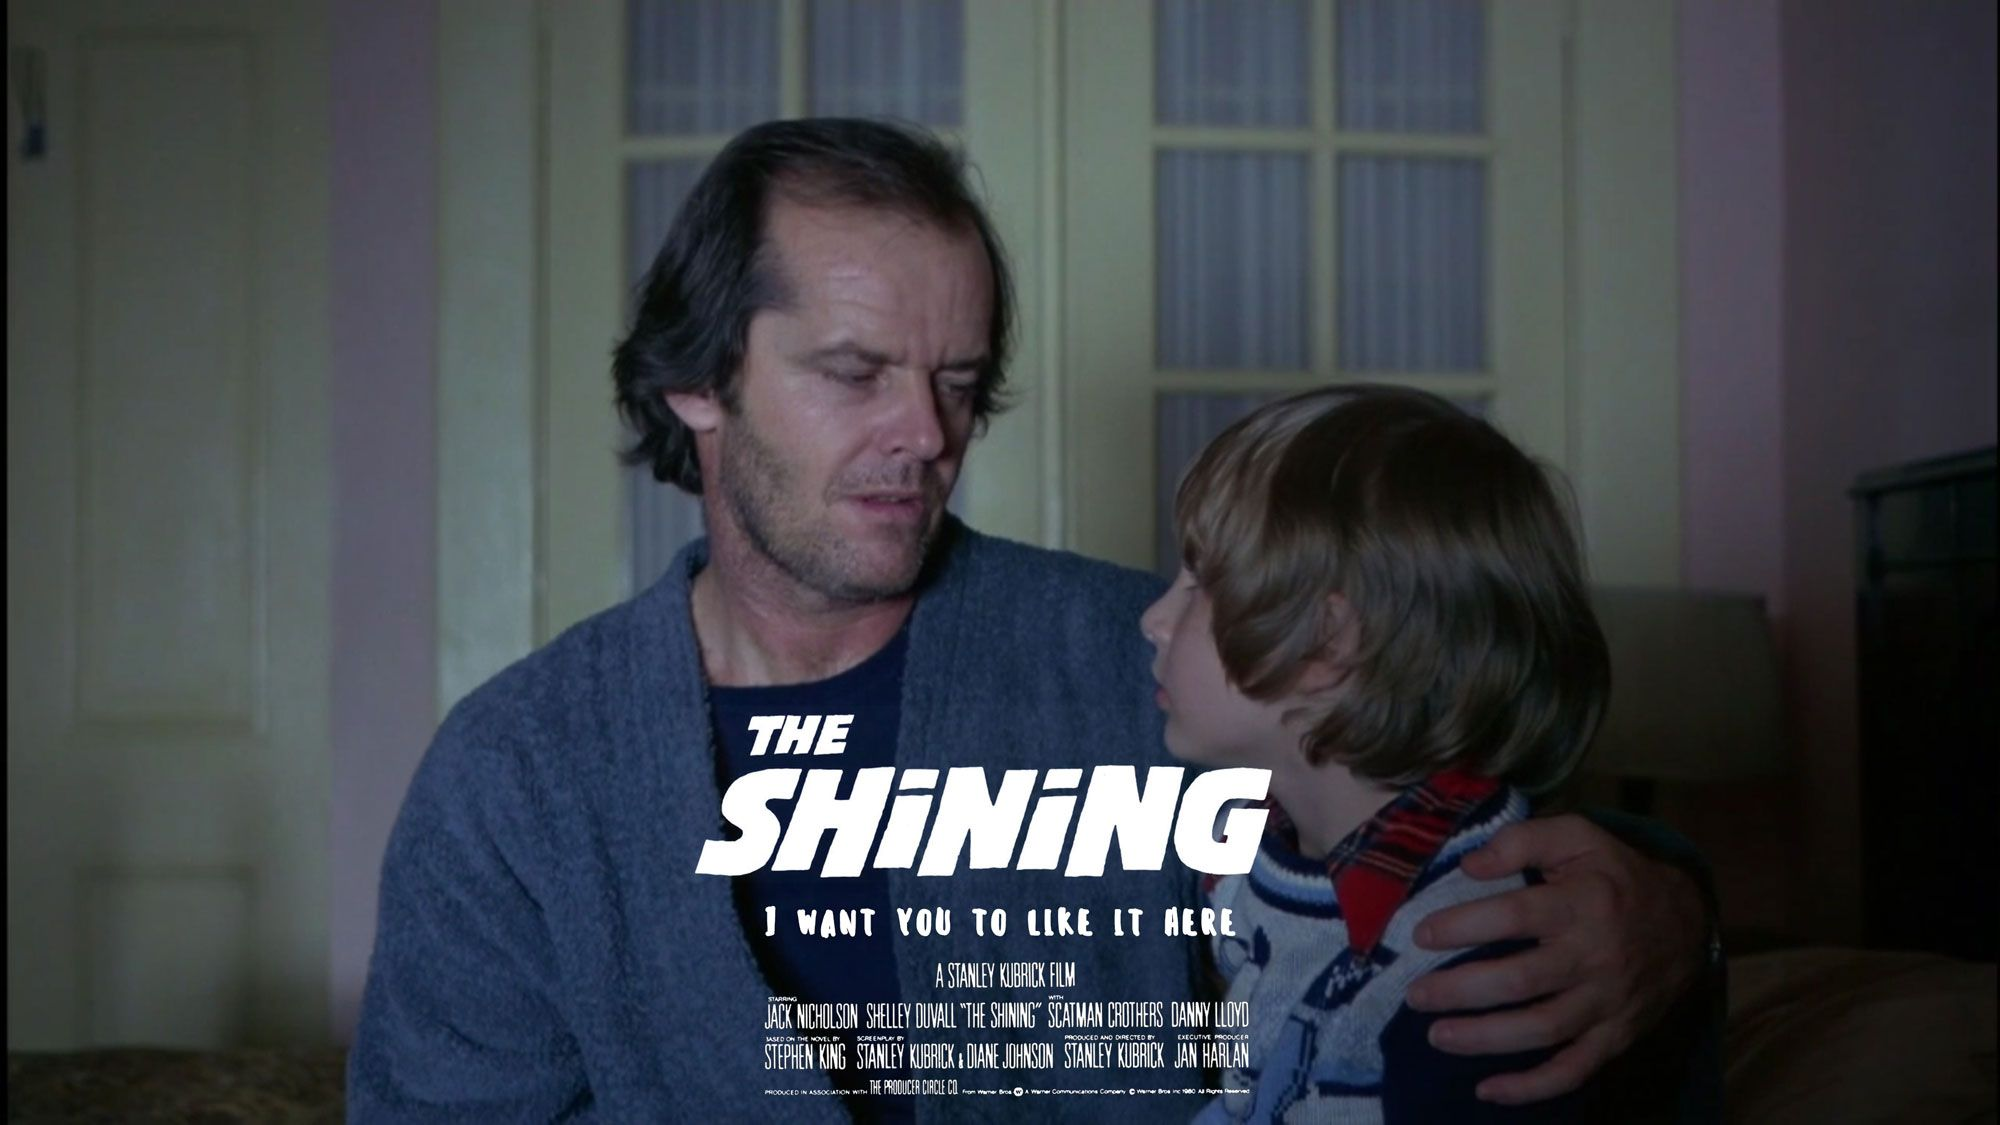 The Shining 1980 Hd Wallpaper From Gallsourcecom Movie